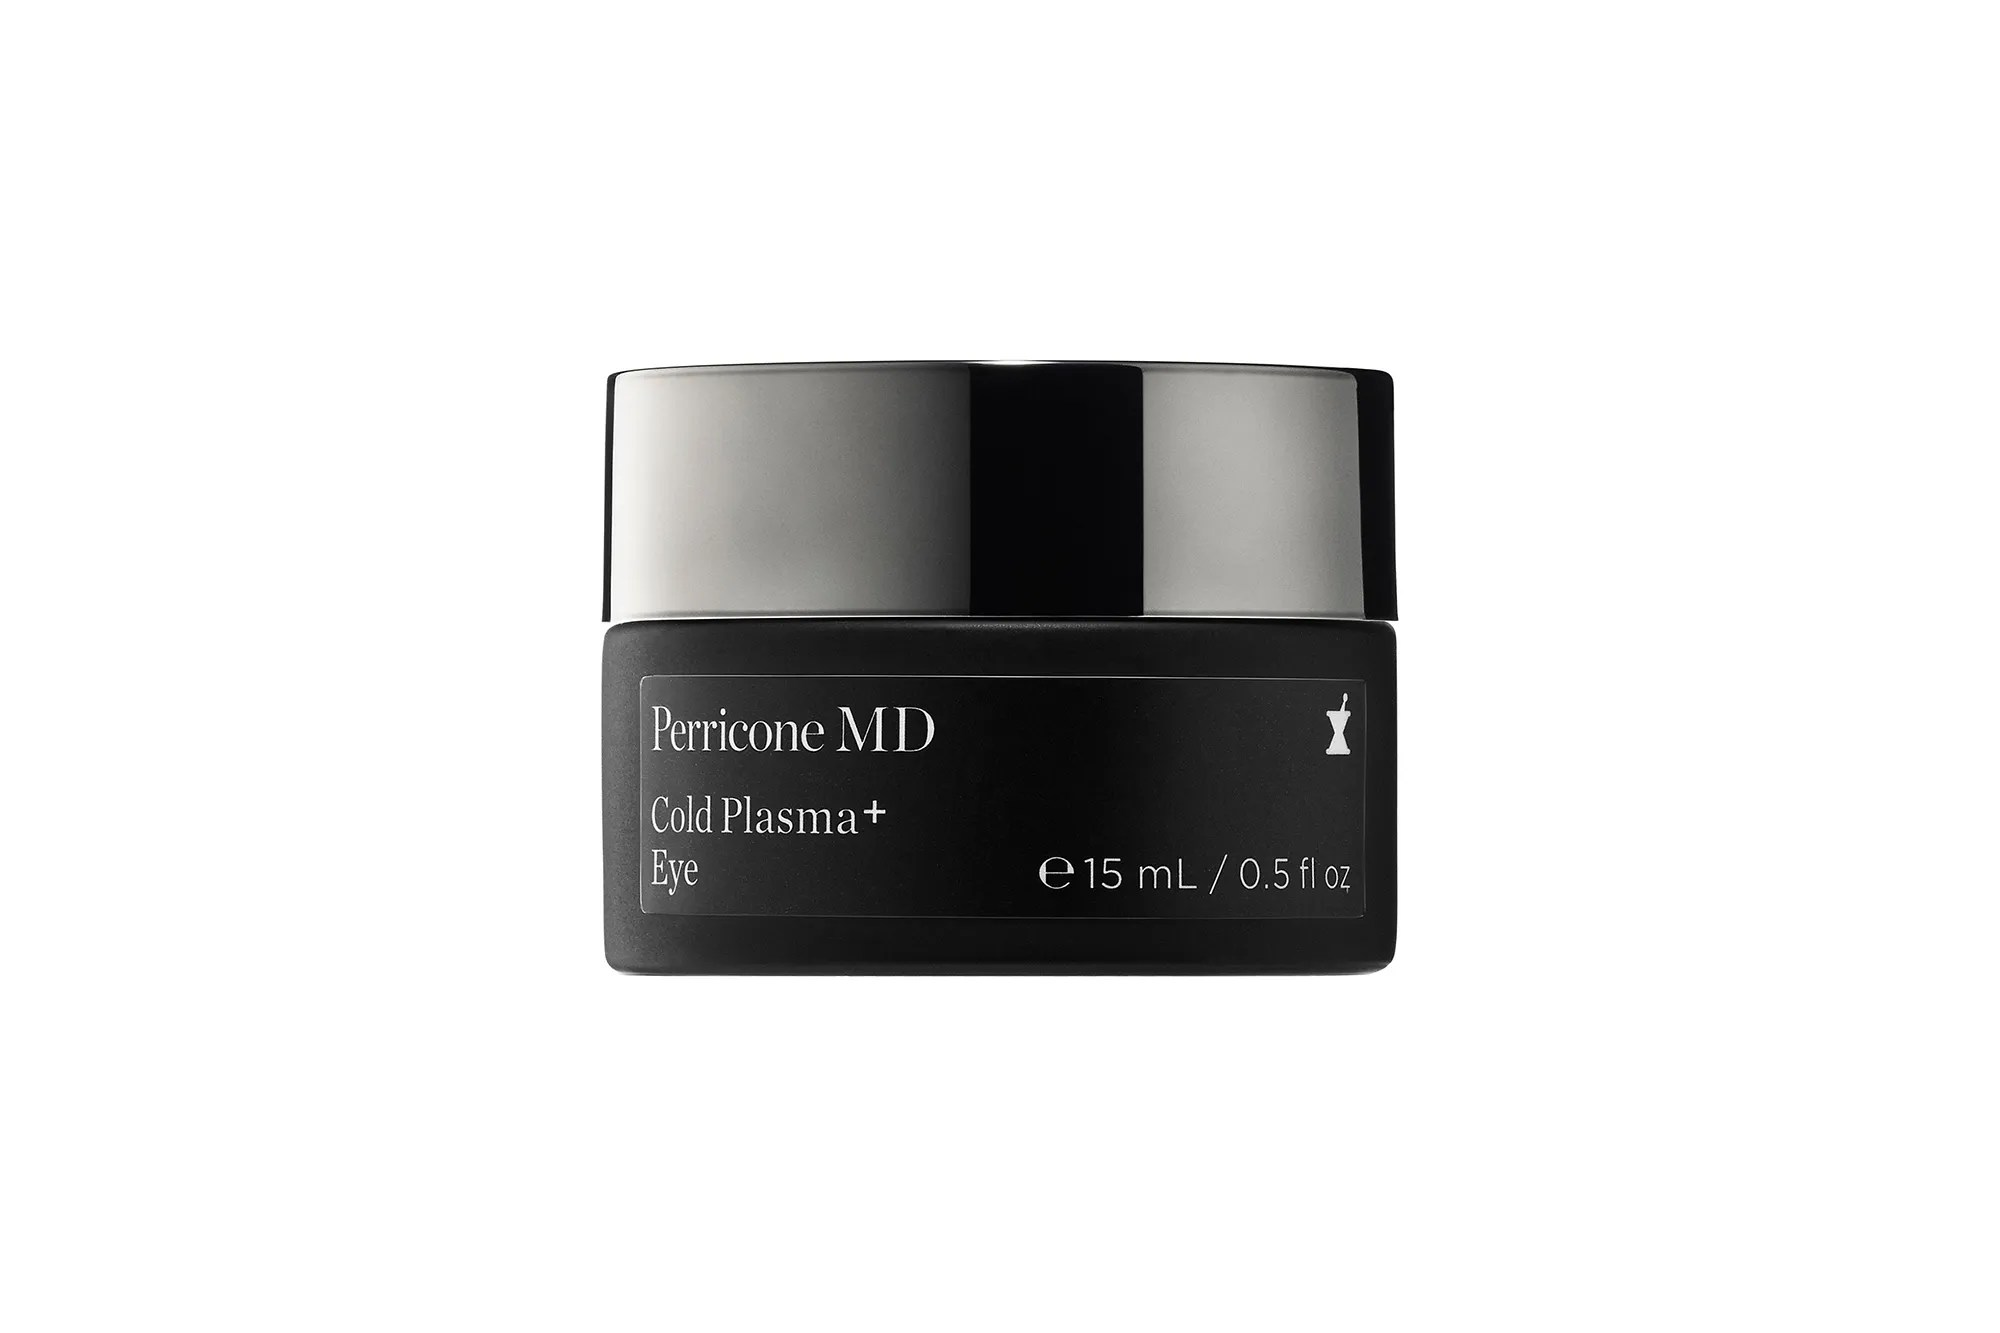 Best Skin Care Cream The Best Anti Aging Products To Benjamin Button Your Face Gq